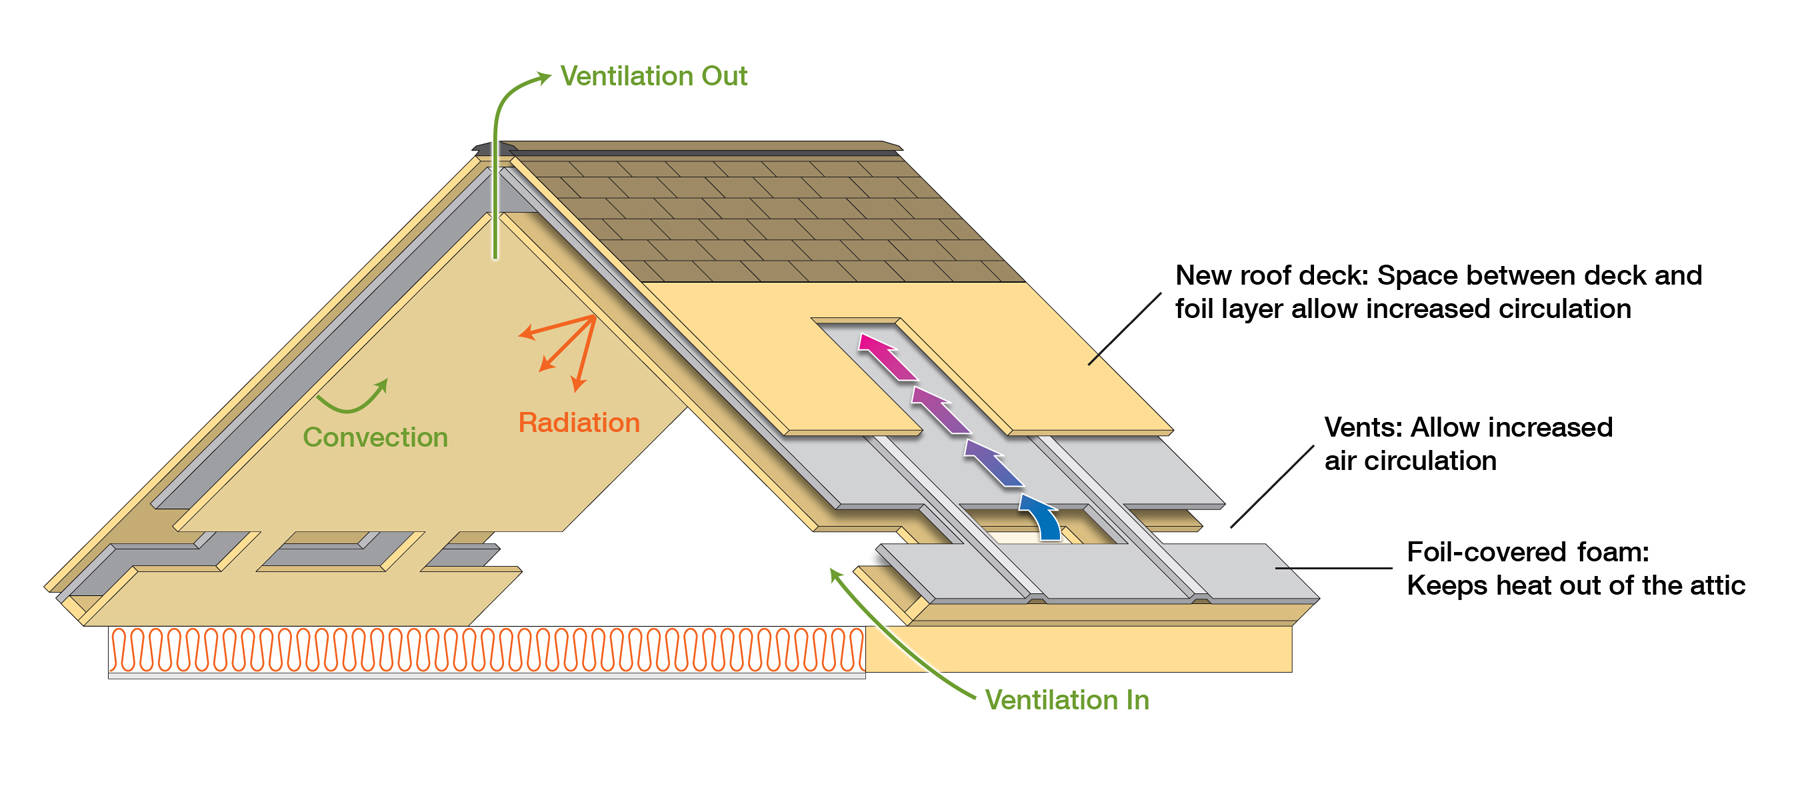 Something practical new roof design saves energy watts for Energy efficient roofing material